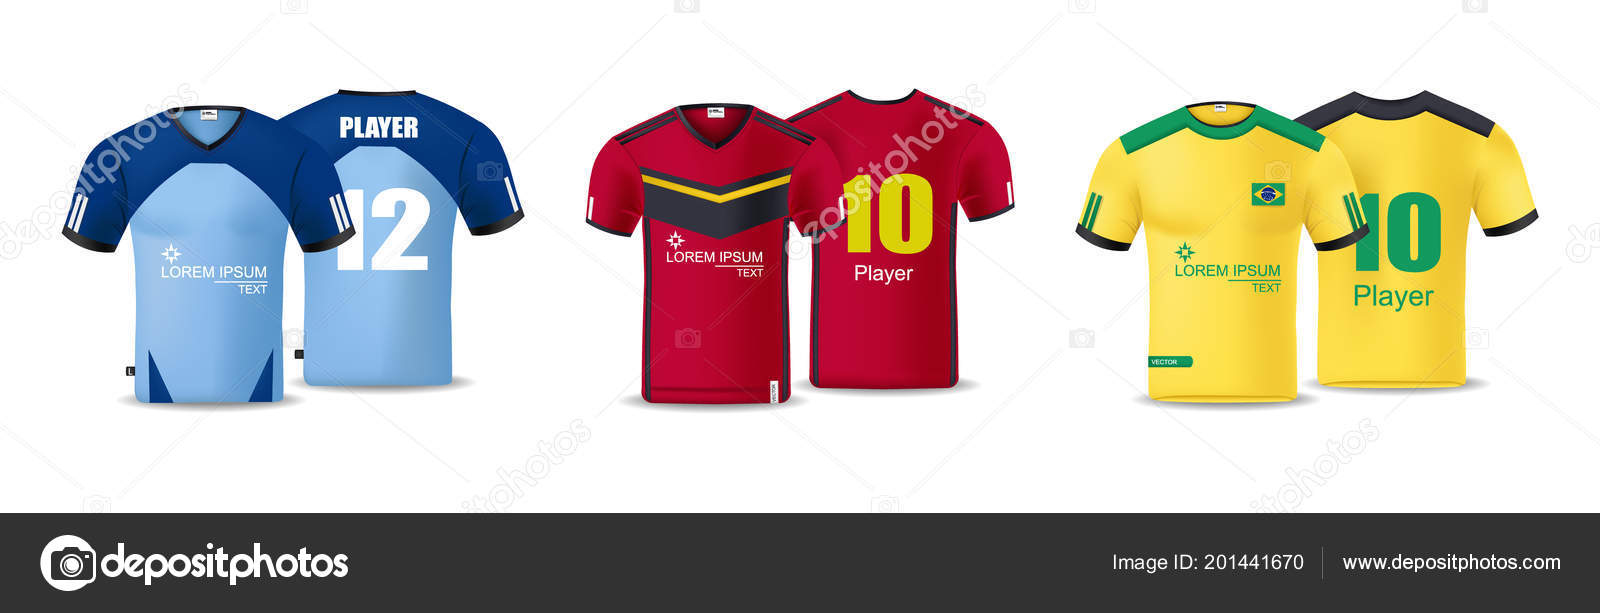 Football T Shirts Collection Vector Design Template For Soccer